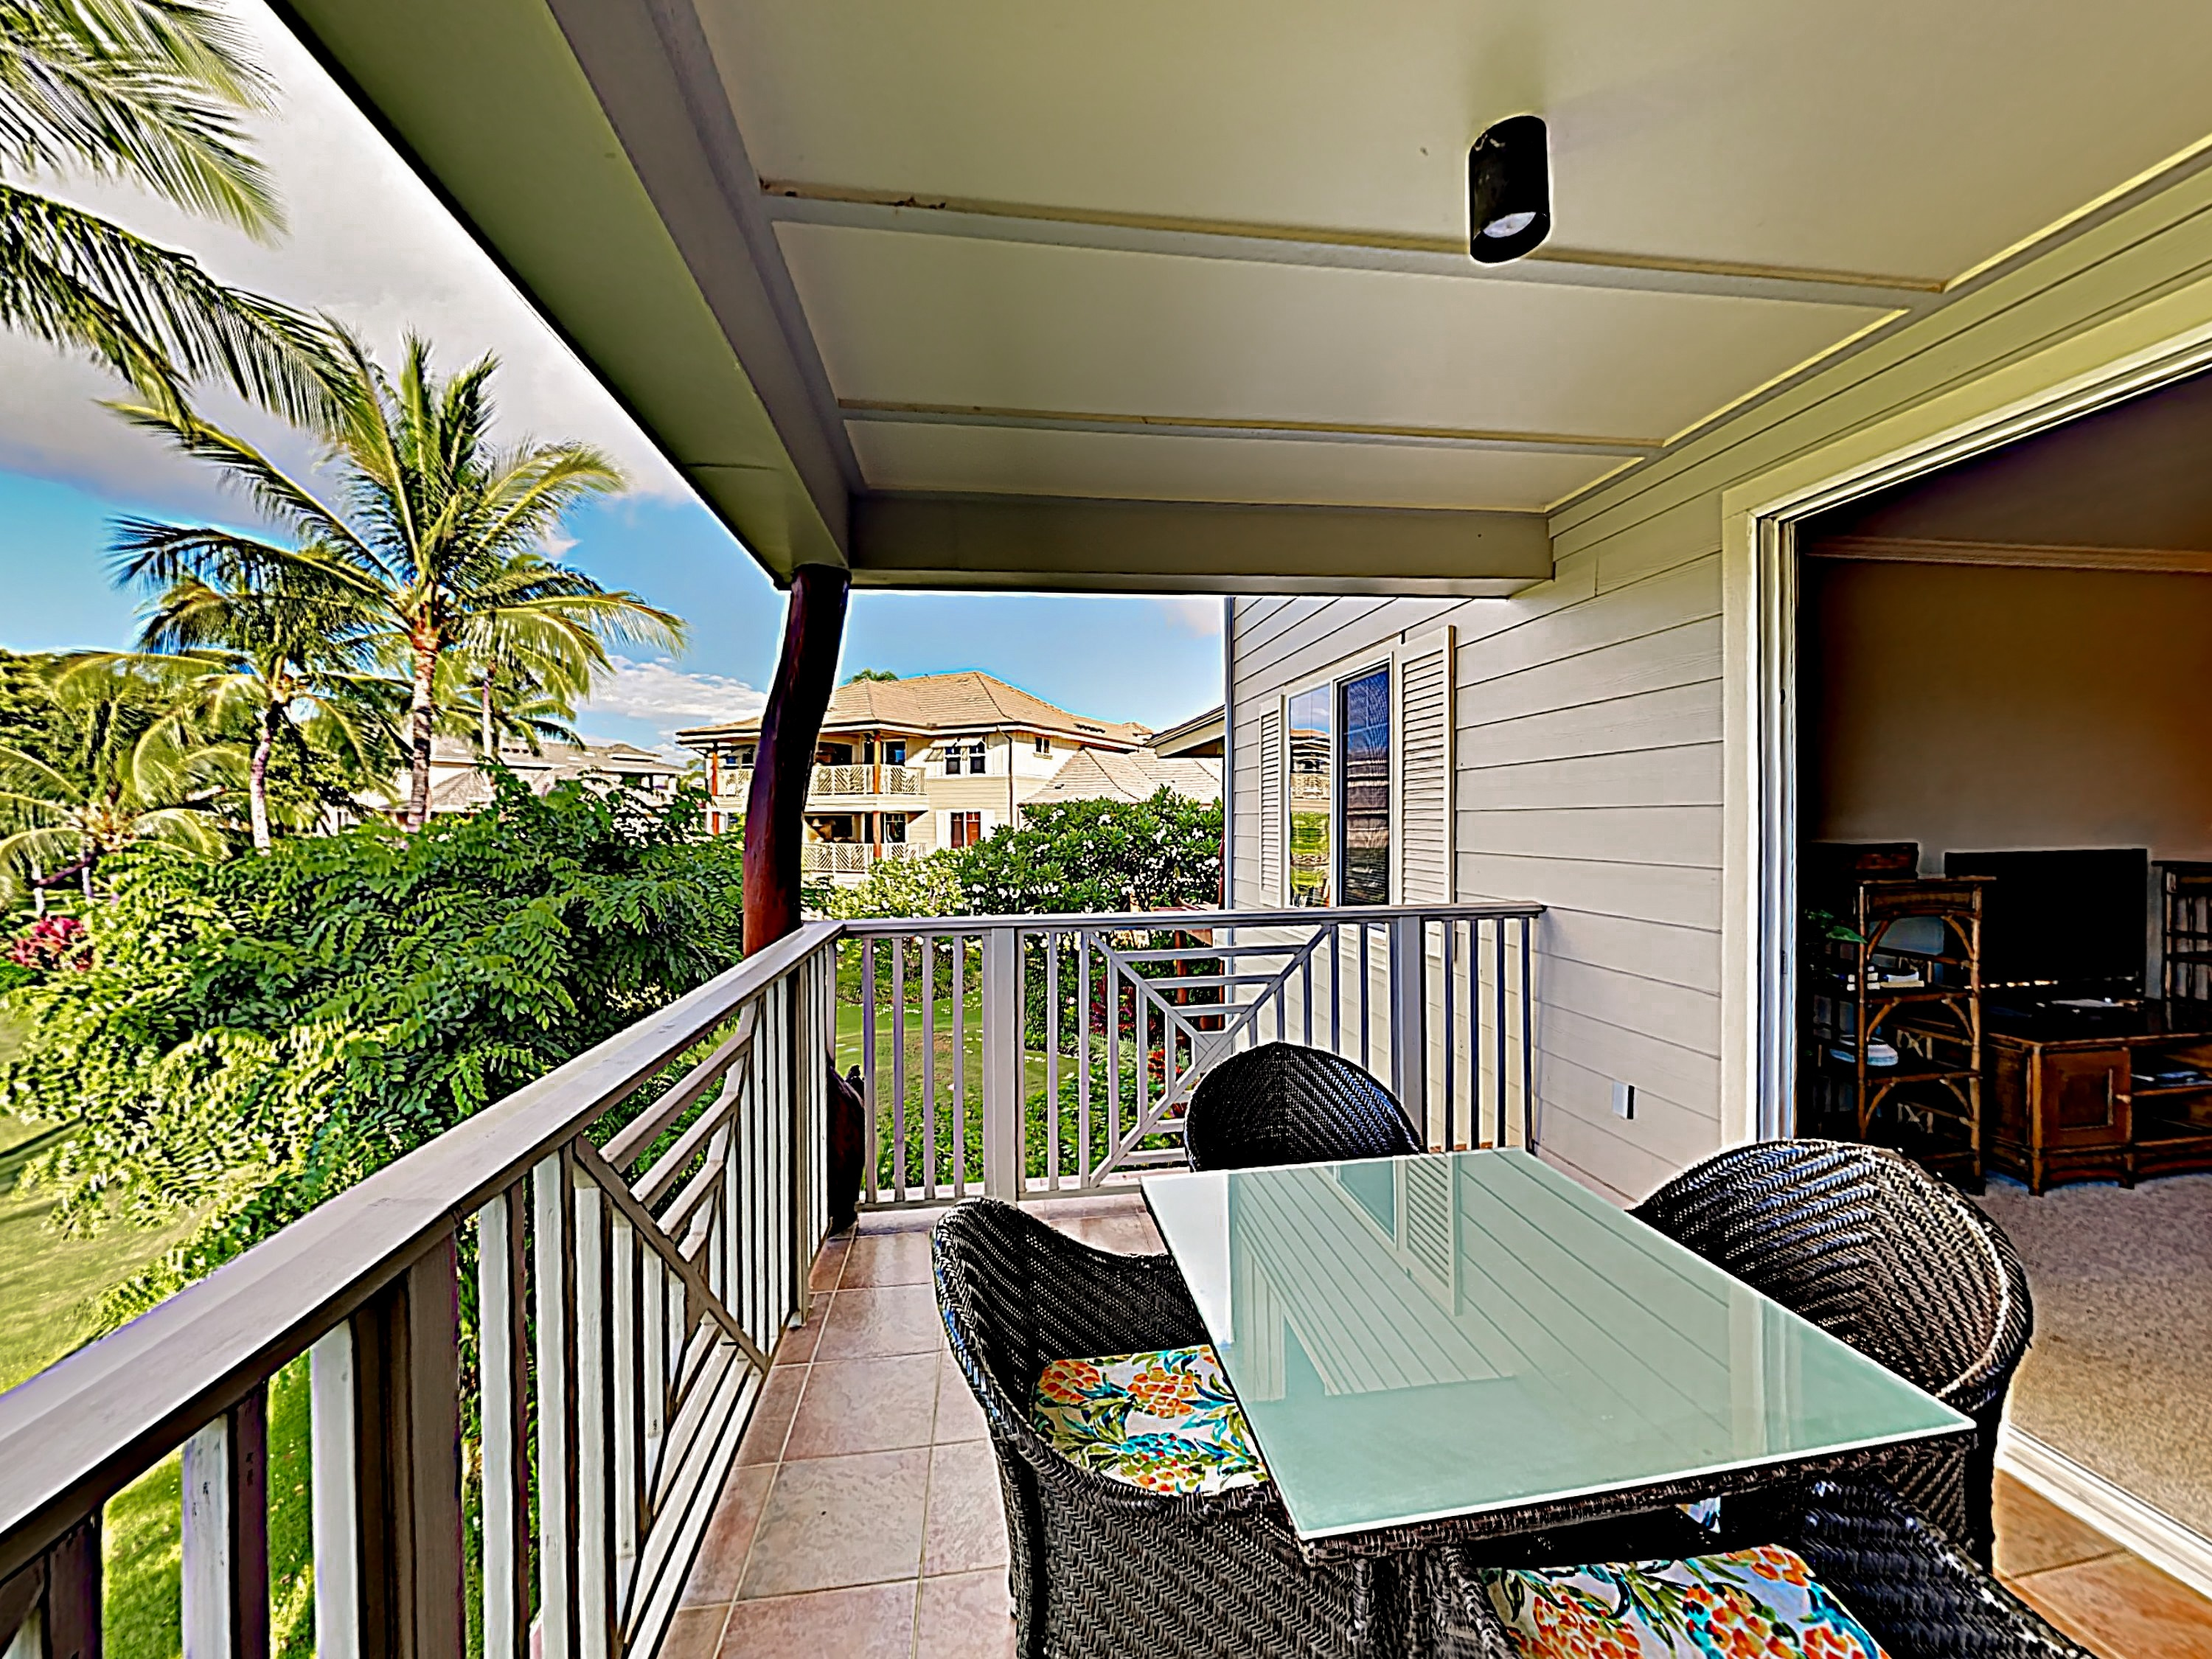 Vacation wishes come true at this 2BR beach getaway.